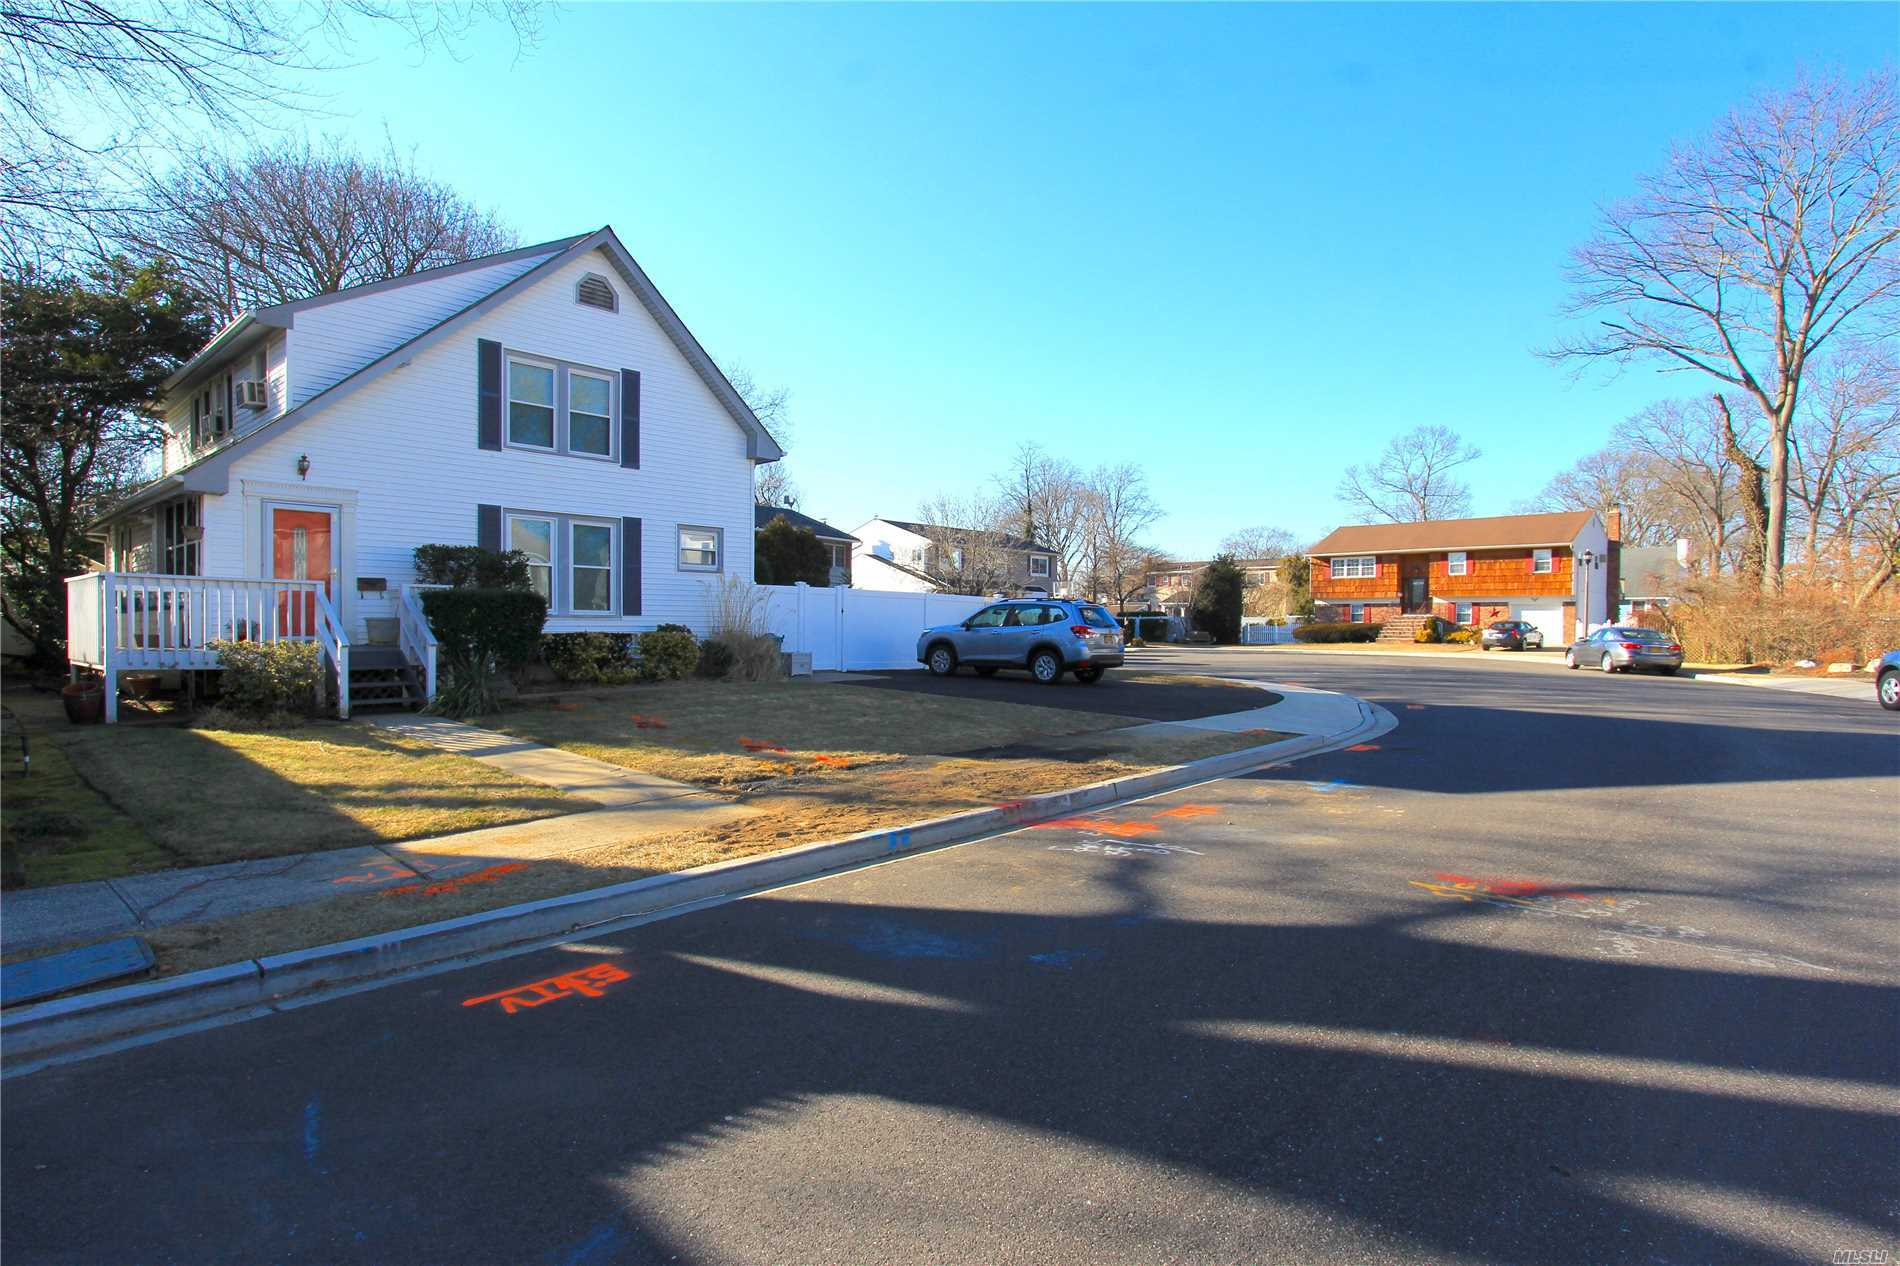 3Br 2Ba Cape Located On A Cul-De-Sac w/ 1st Floor Open Floorplan! Beautiful Eat-In-Kitchen w/ Island & SS Appliances. Large Formal Dining Room. Hardwood Floors Throughout. Full Living Room W/ Wood Burning Fireplace. Usable 1st & 2nd Floor Ductwork for Central Air. Huge PVC Fenced Backyard w/ Paver Patio. Recently Finished Basement w/ New: Flooring, Doors, Moulding & Electric. Merrick Schools: Chatterton Elementary, Merrick Ave Middle, Sanford K. Calhoun High.